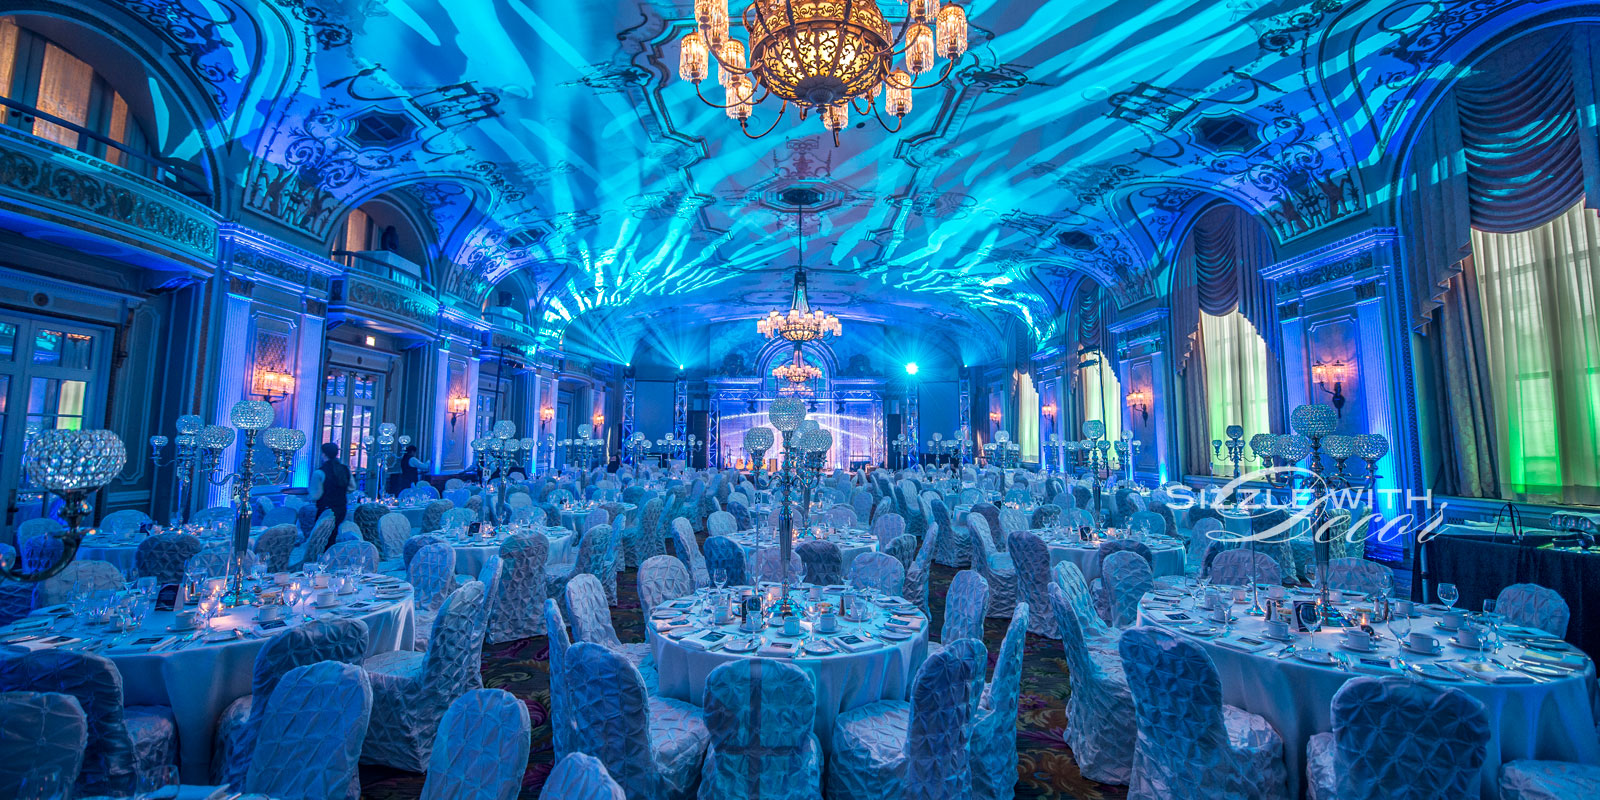 Sizzle with decor wedding and event decor ottawa sliderimageblue junglespirit